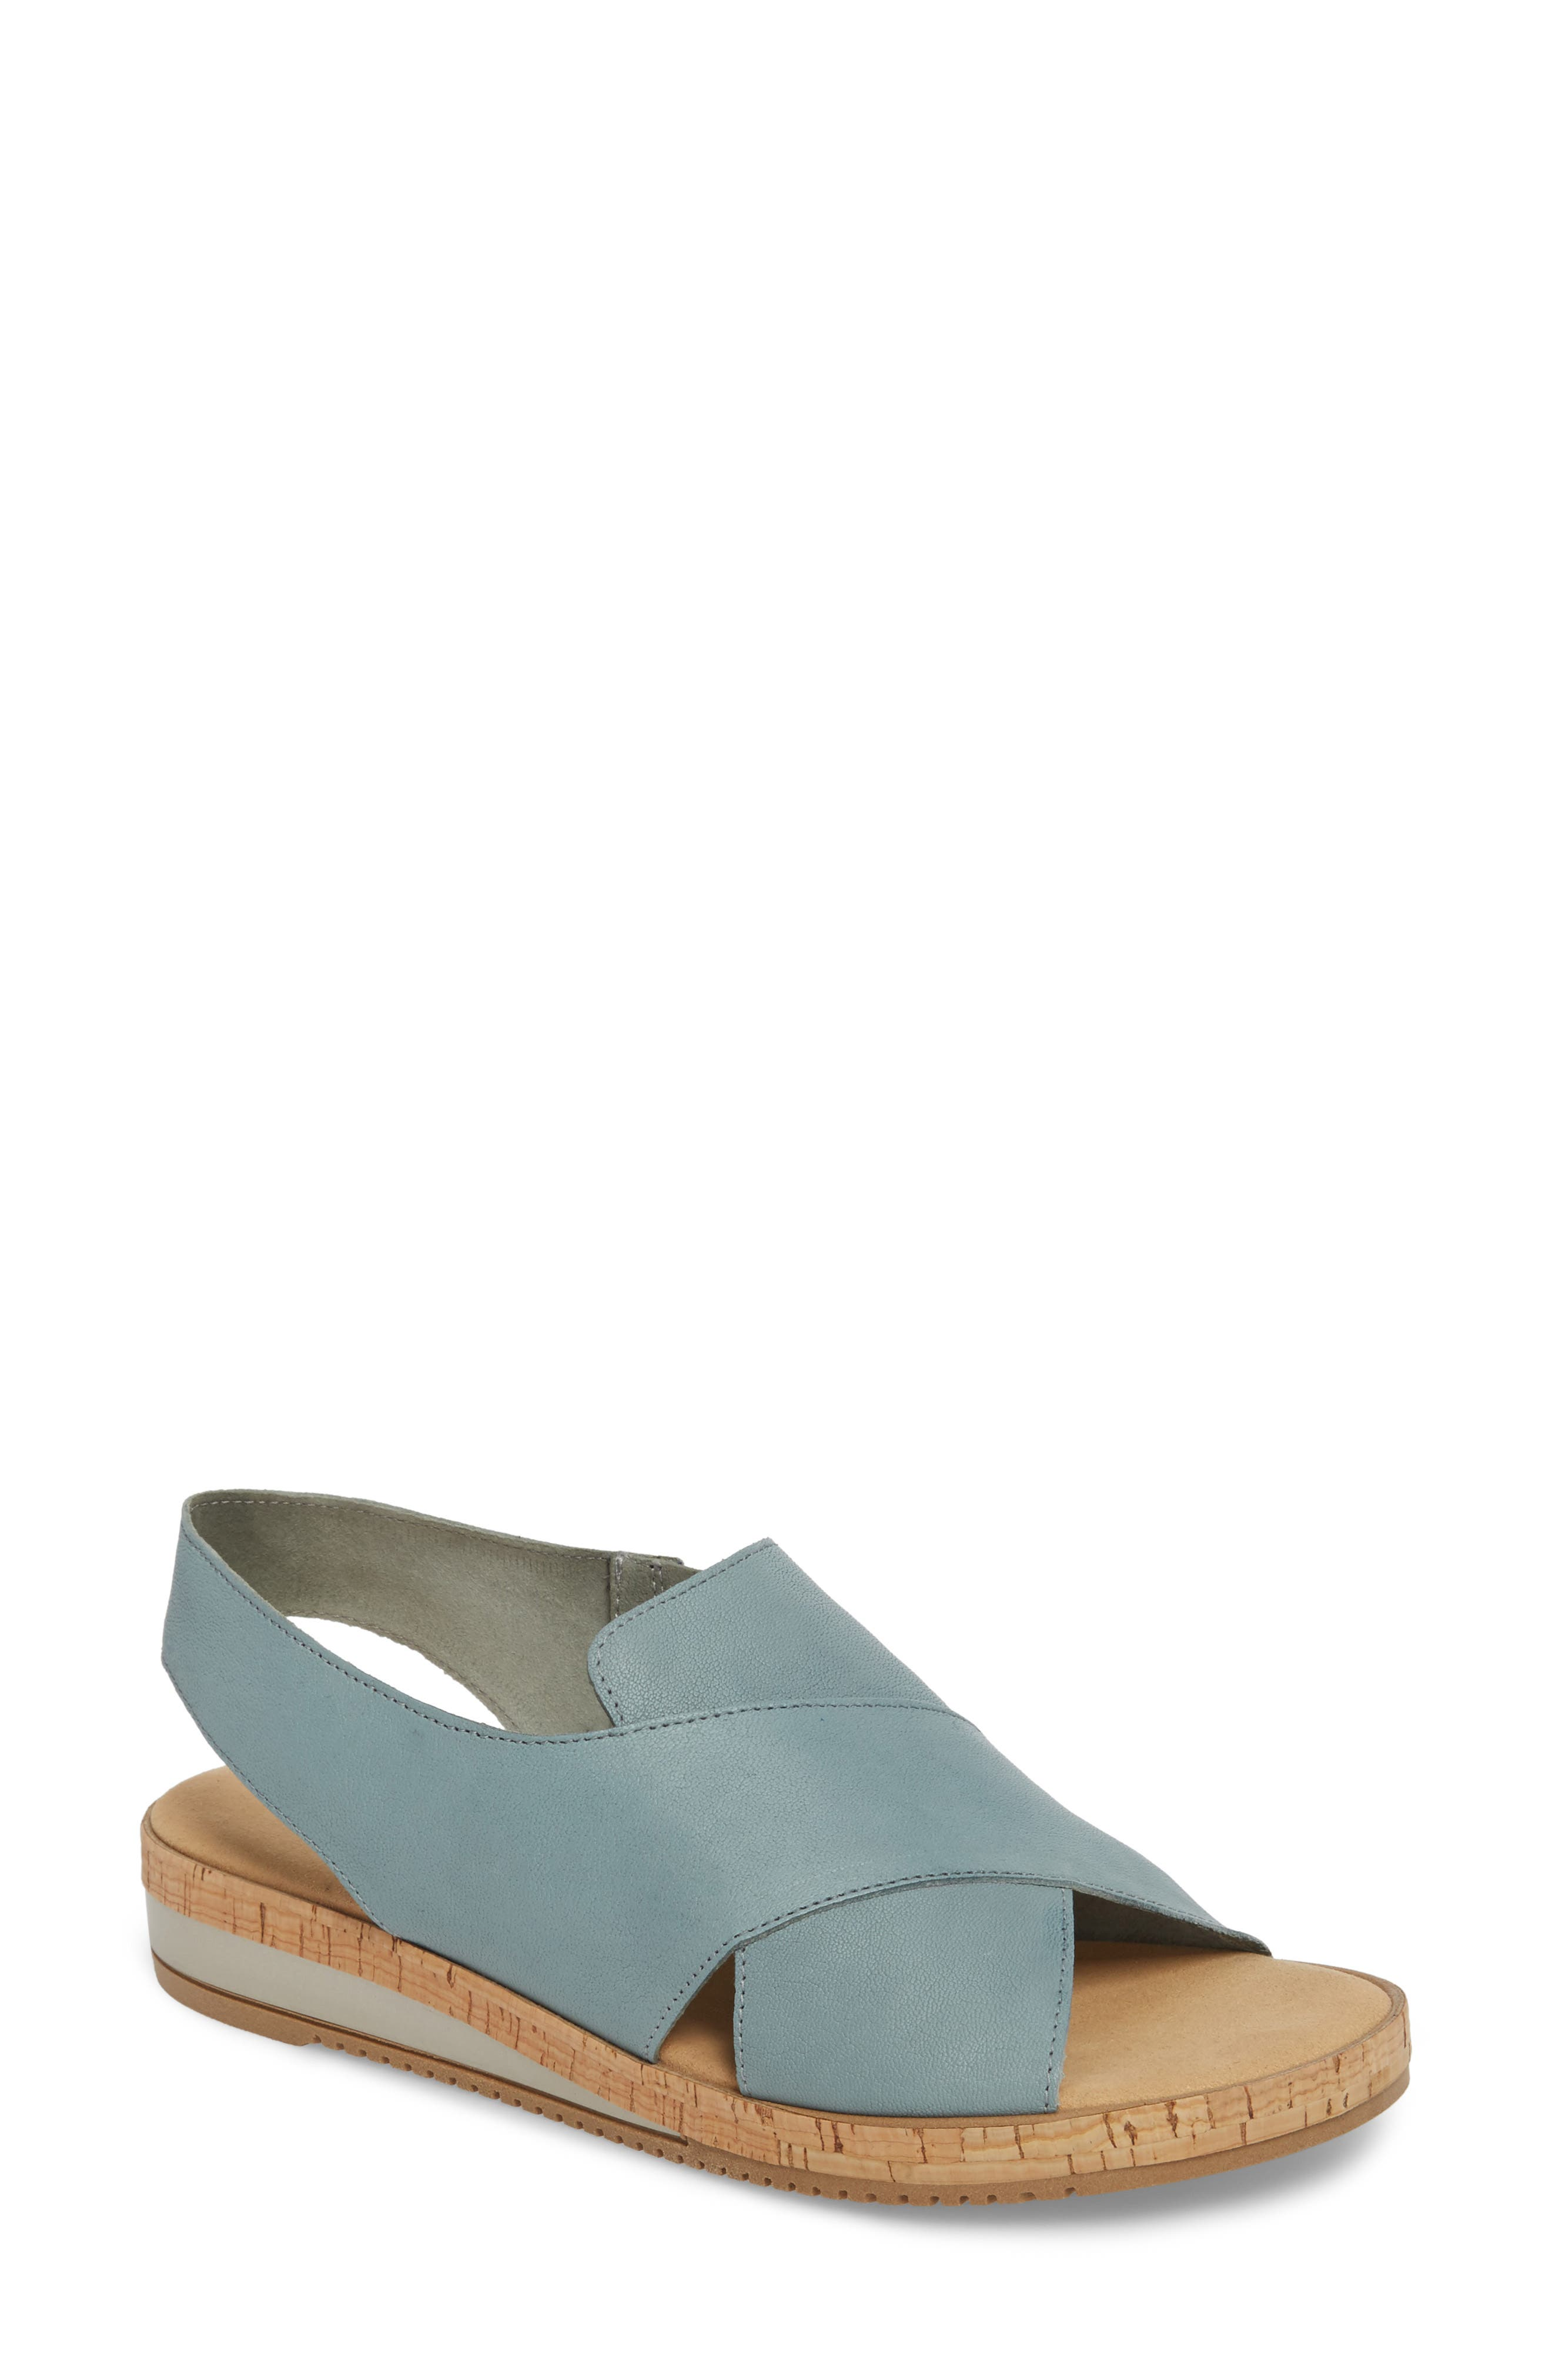 Sylke Sandal,                         Main,                         color, Jeans Leather